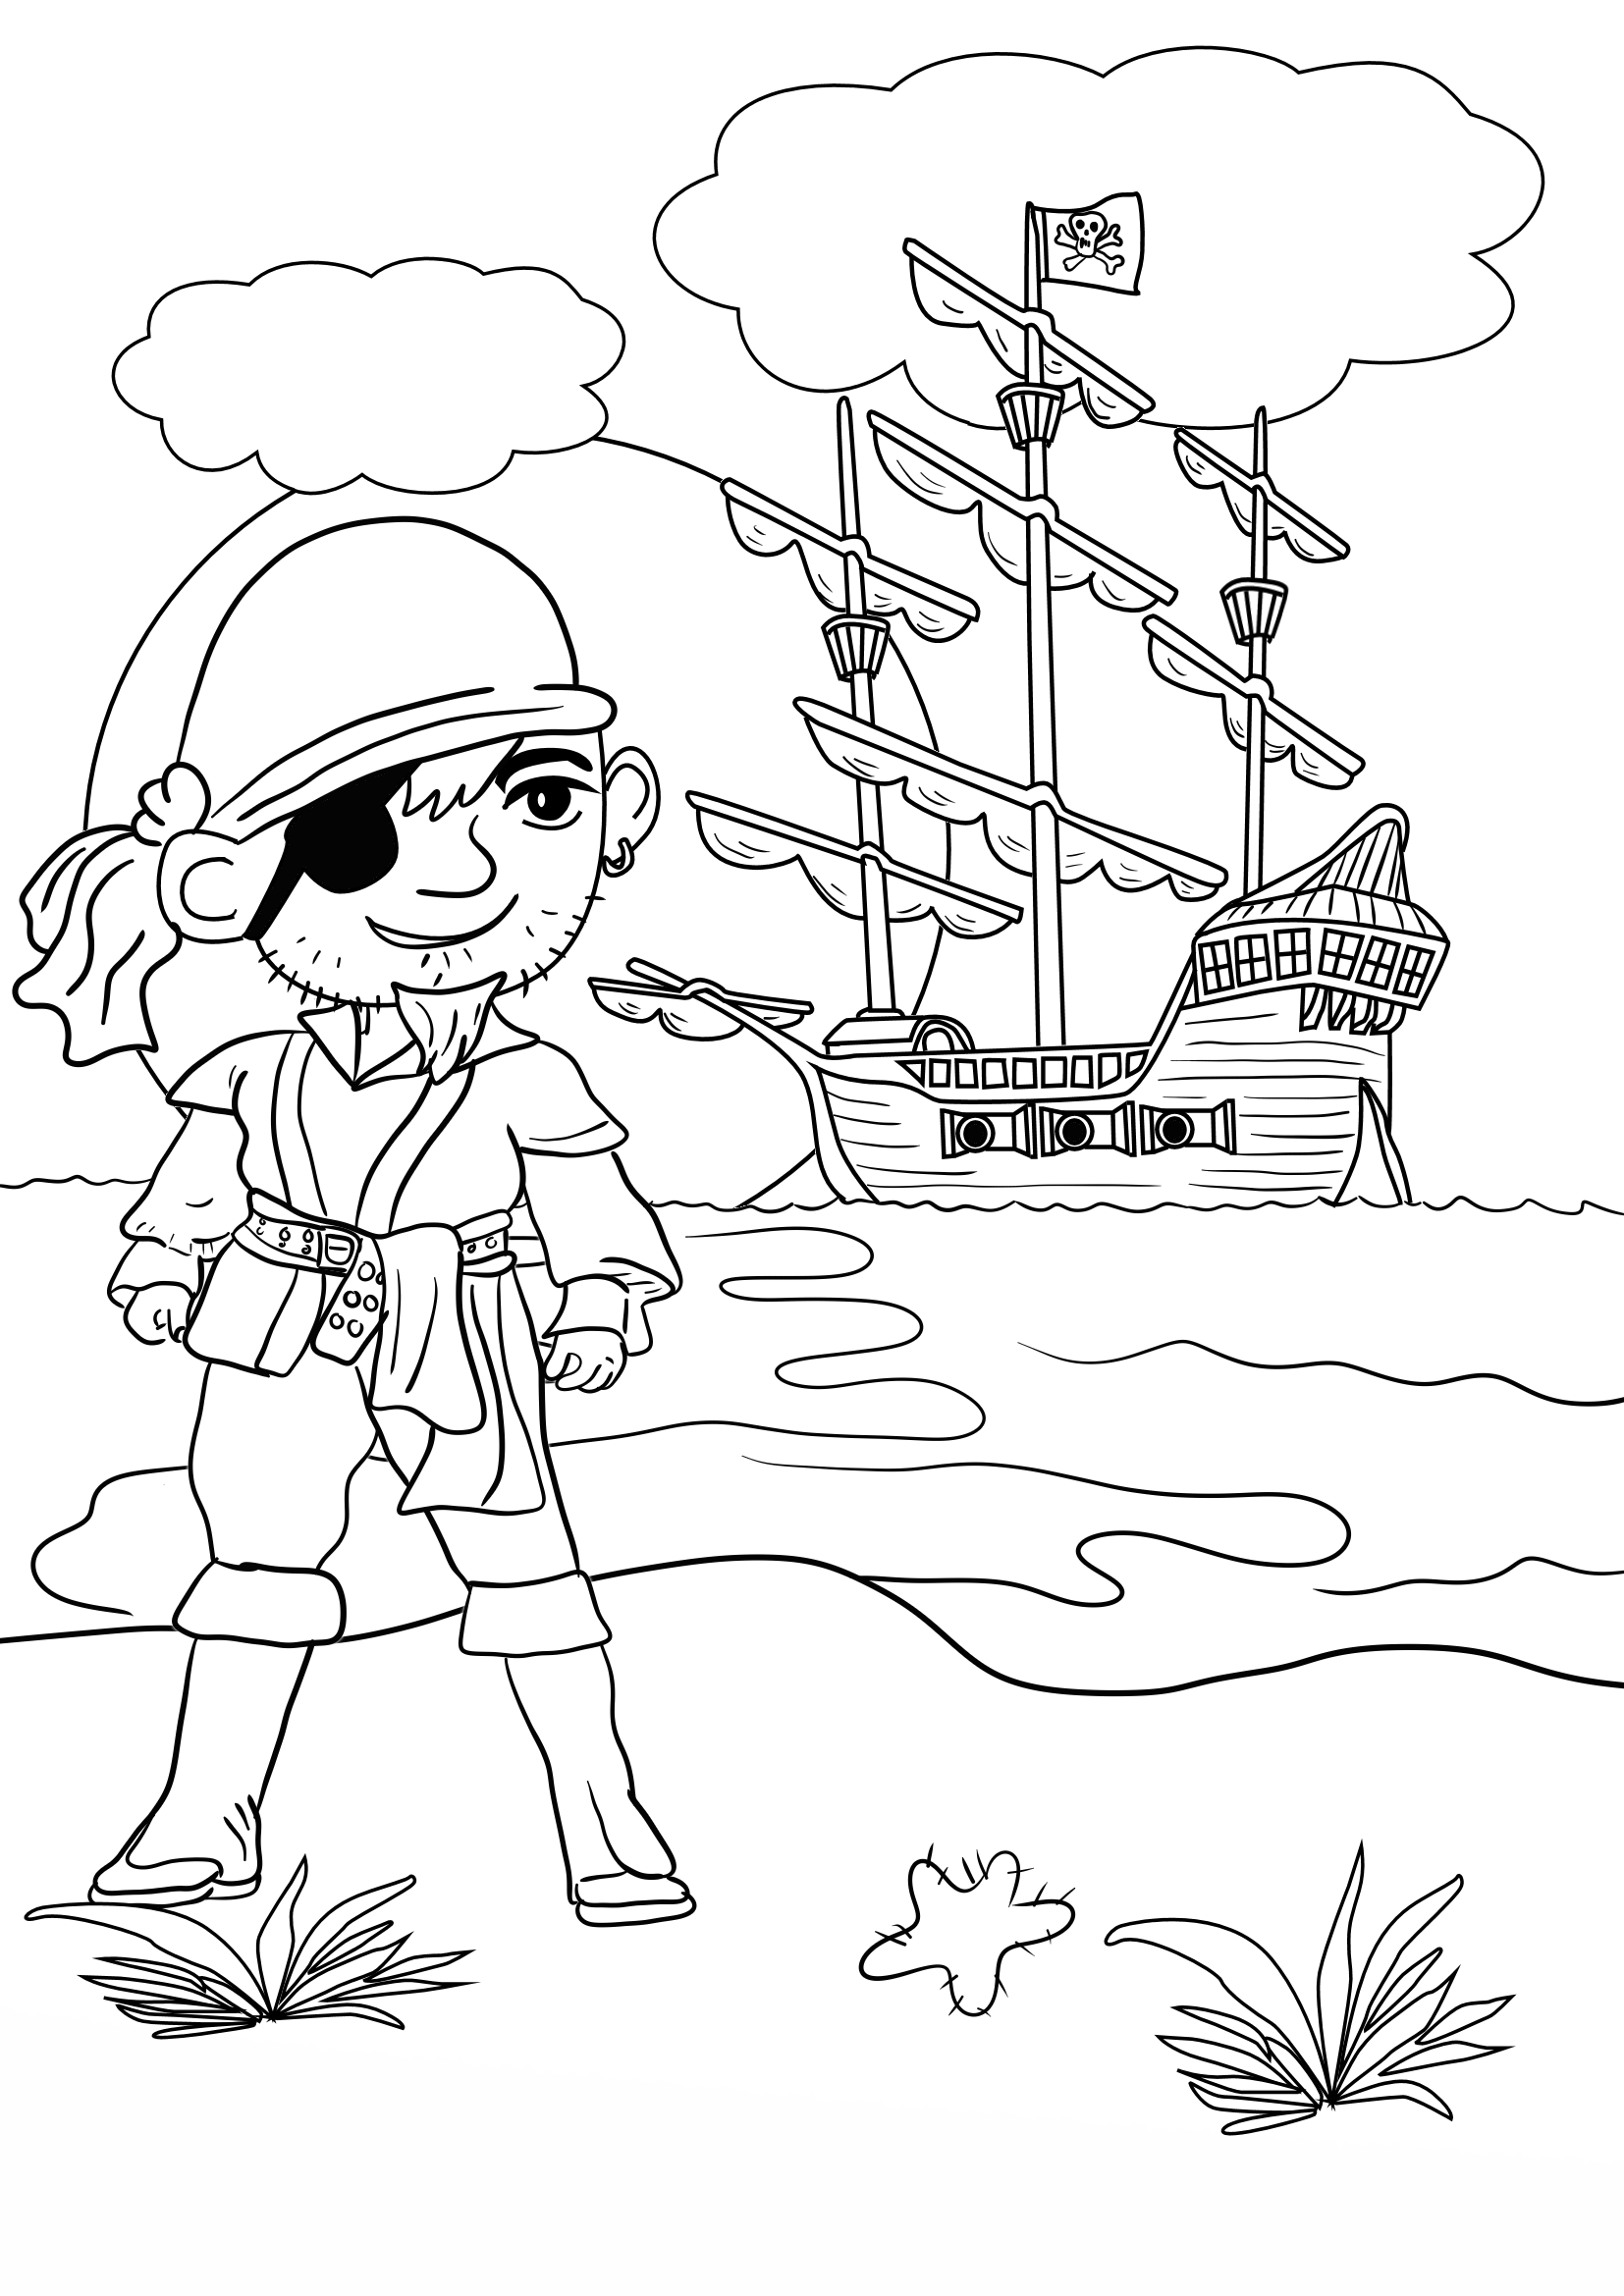 pirate images to colour free printable pirate coloring pages for kids pirate images to colour